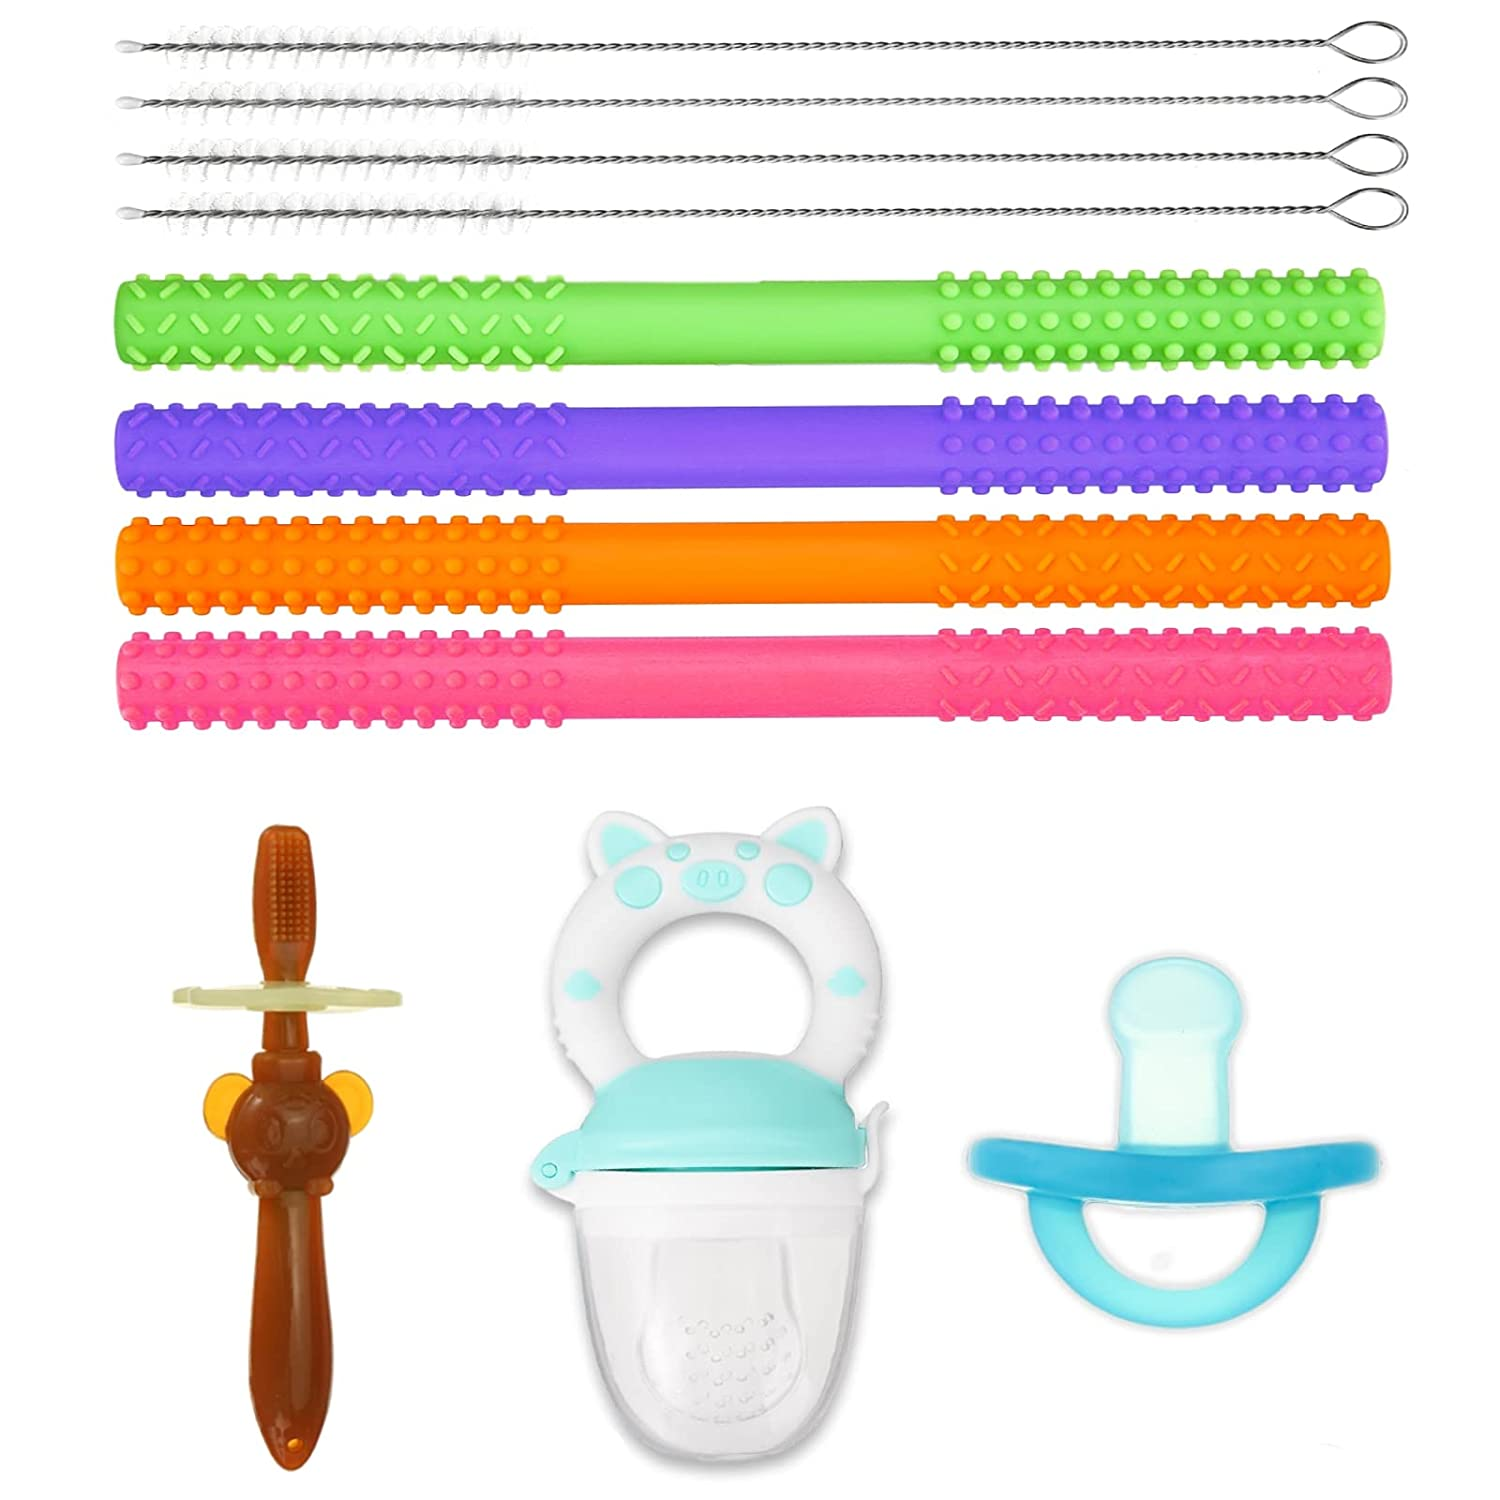 LIUMY Baby Teething Toys Set(7-Piece),Teething Tubes   Fruit Feeder Pacifier   Toothbrush Teether   Baby Pacifier   Silicone Teetherfor Babies to Soothe Tender Gums